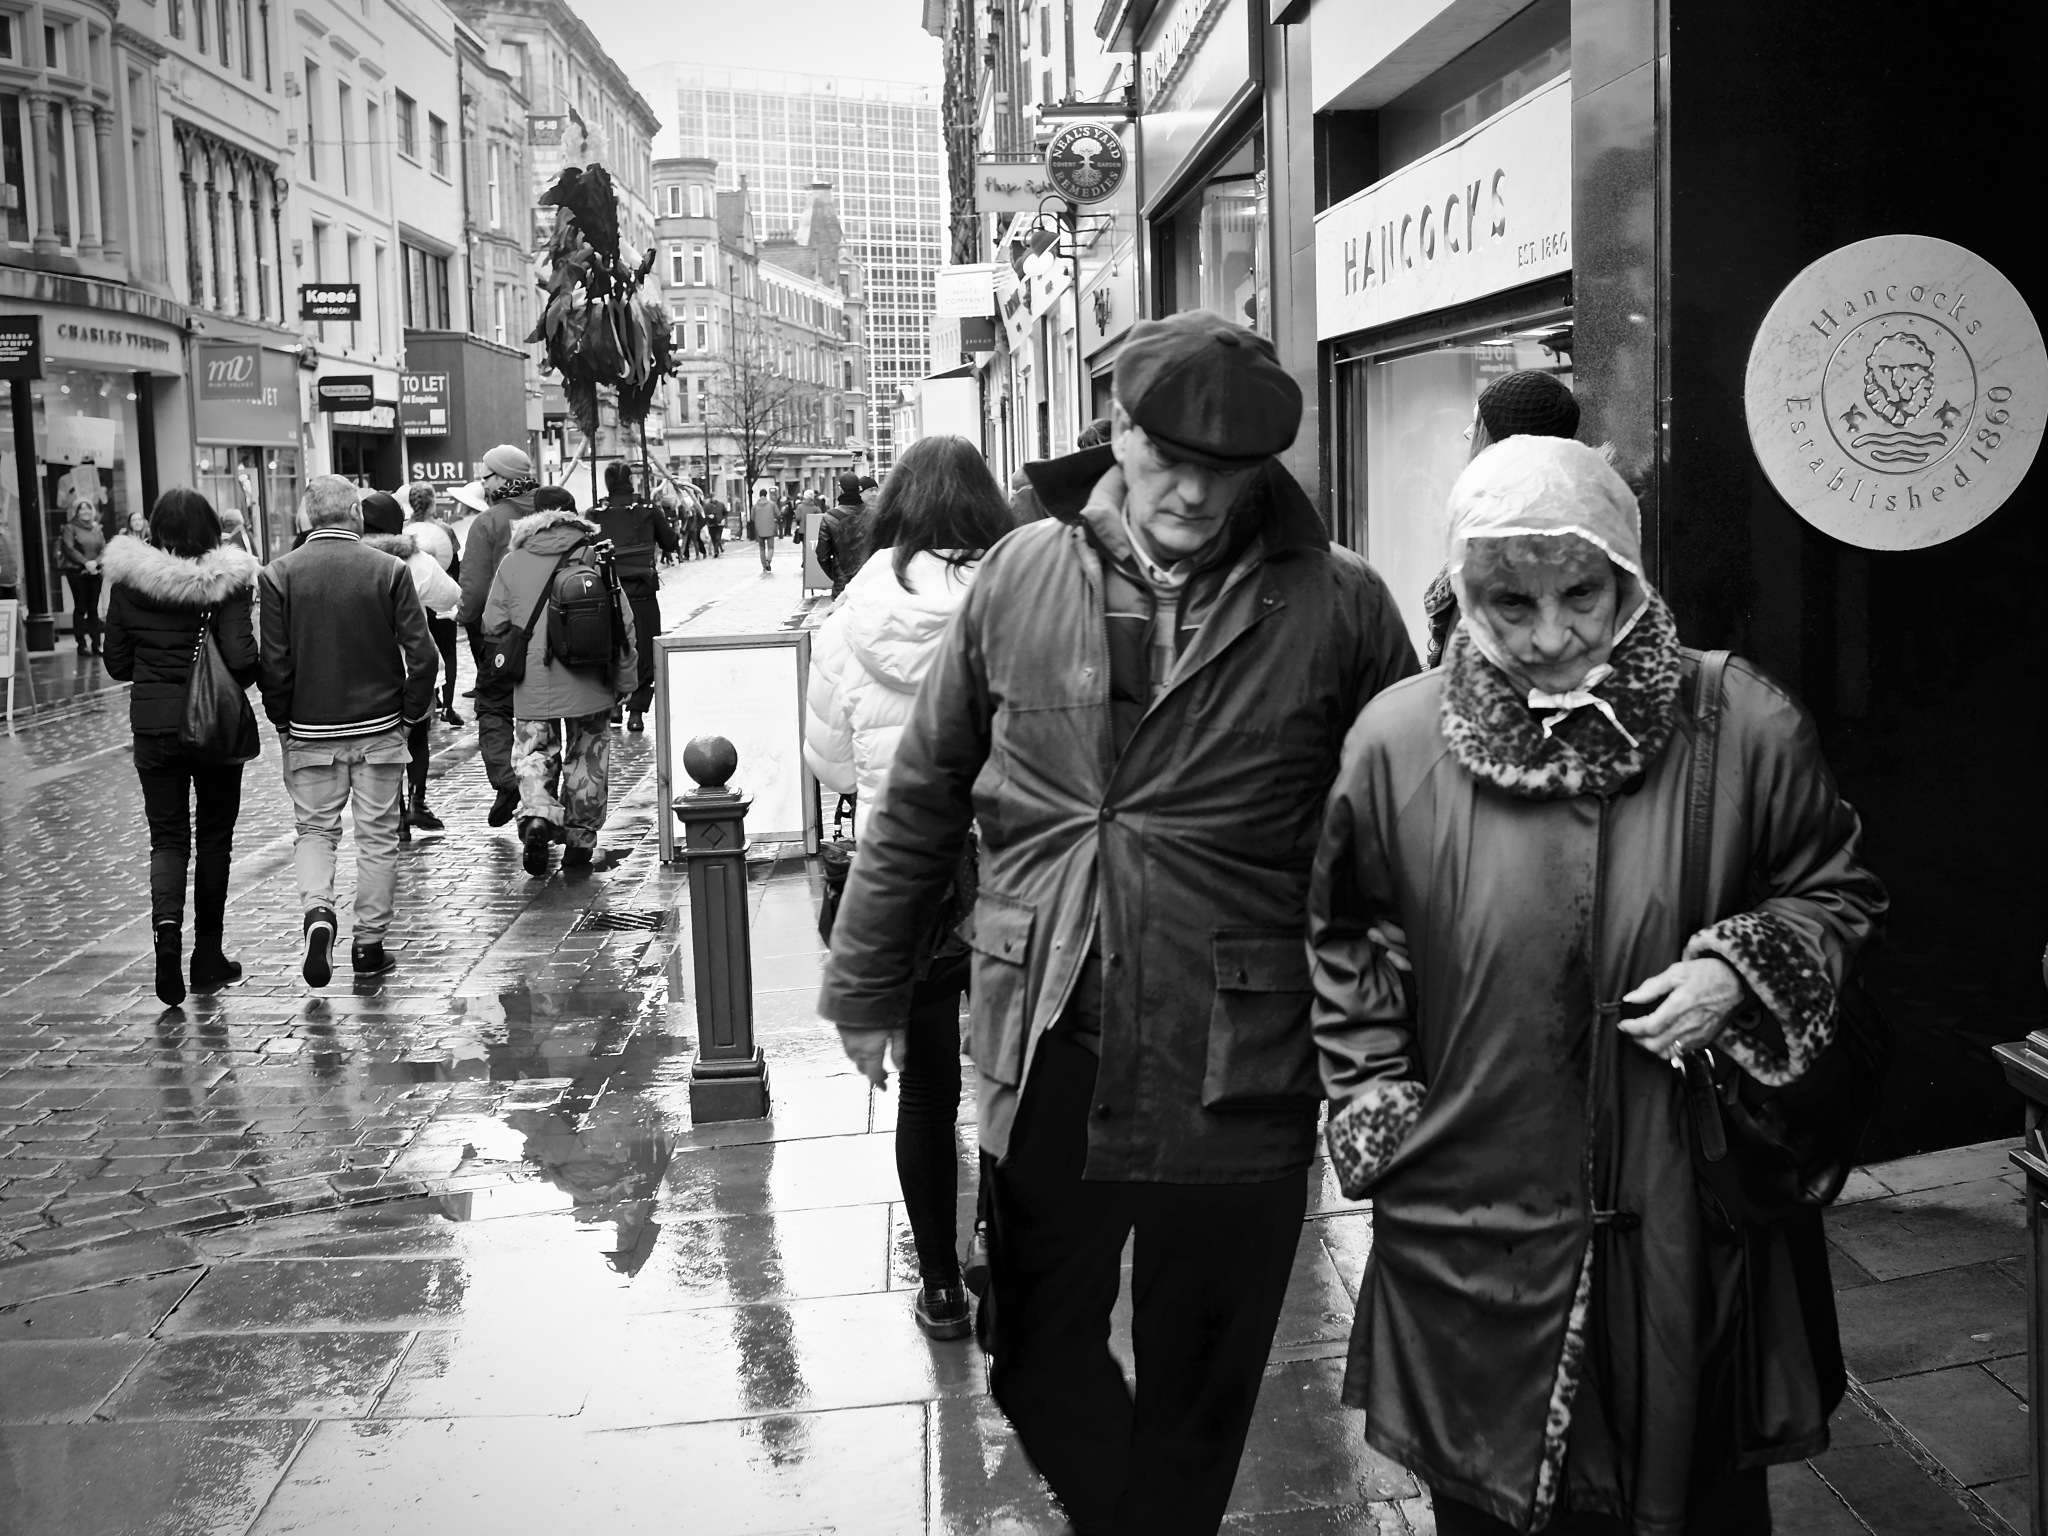 King Street, Manchester City Centre, Manchester, UK. by StreetCrusader